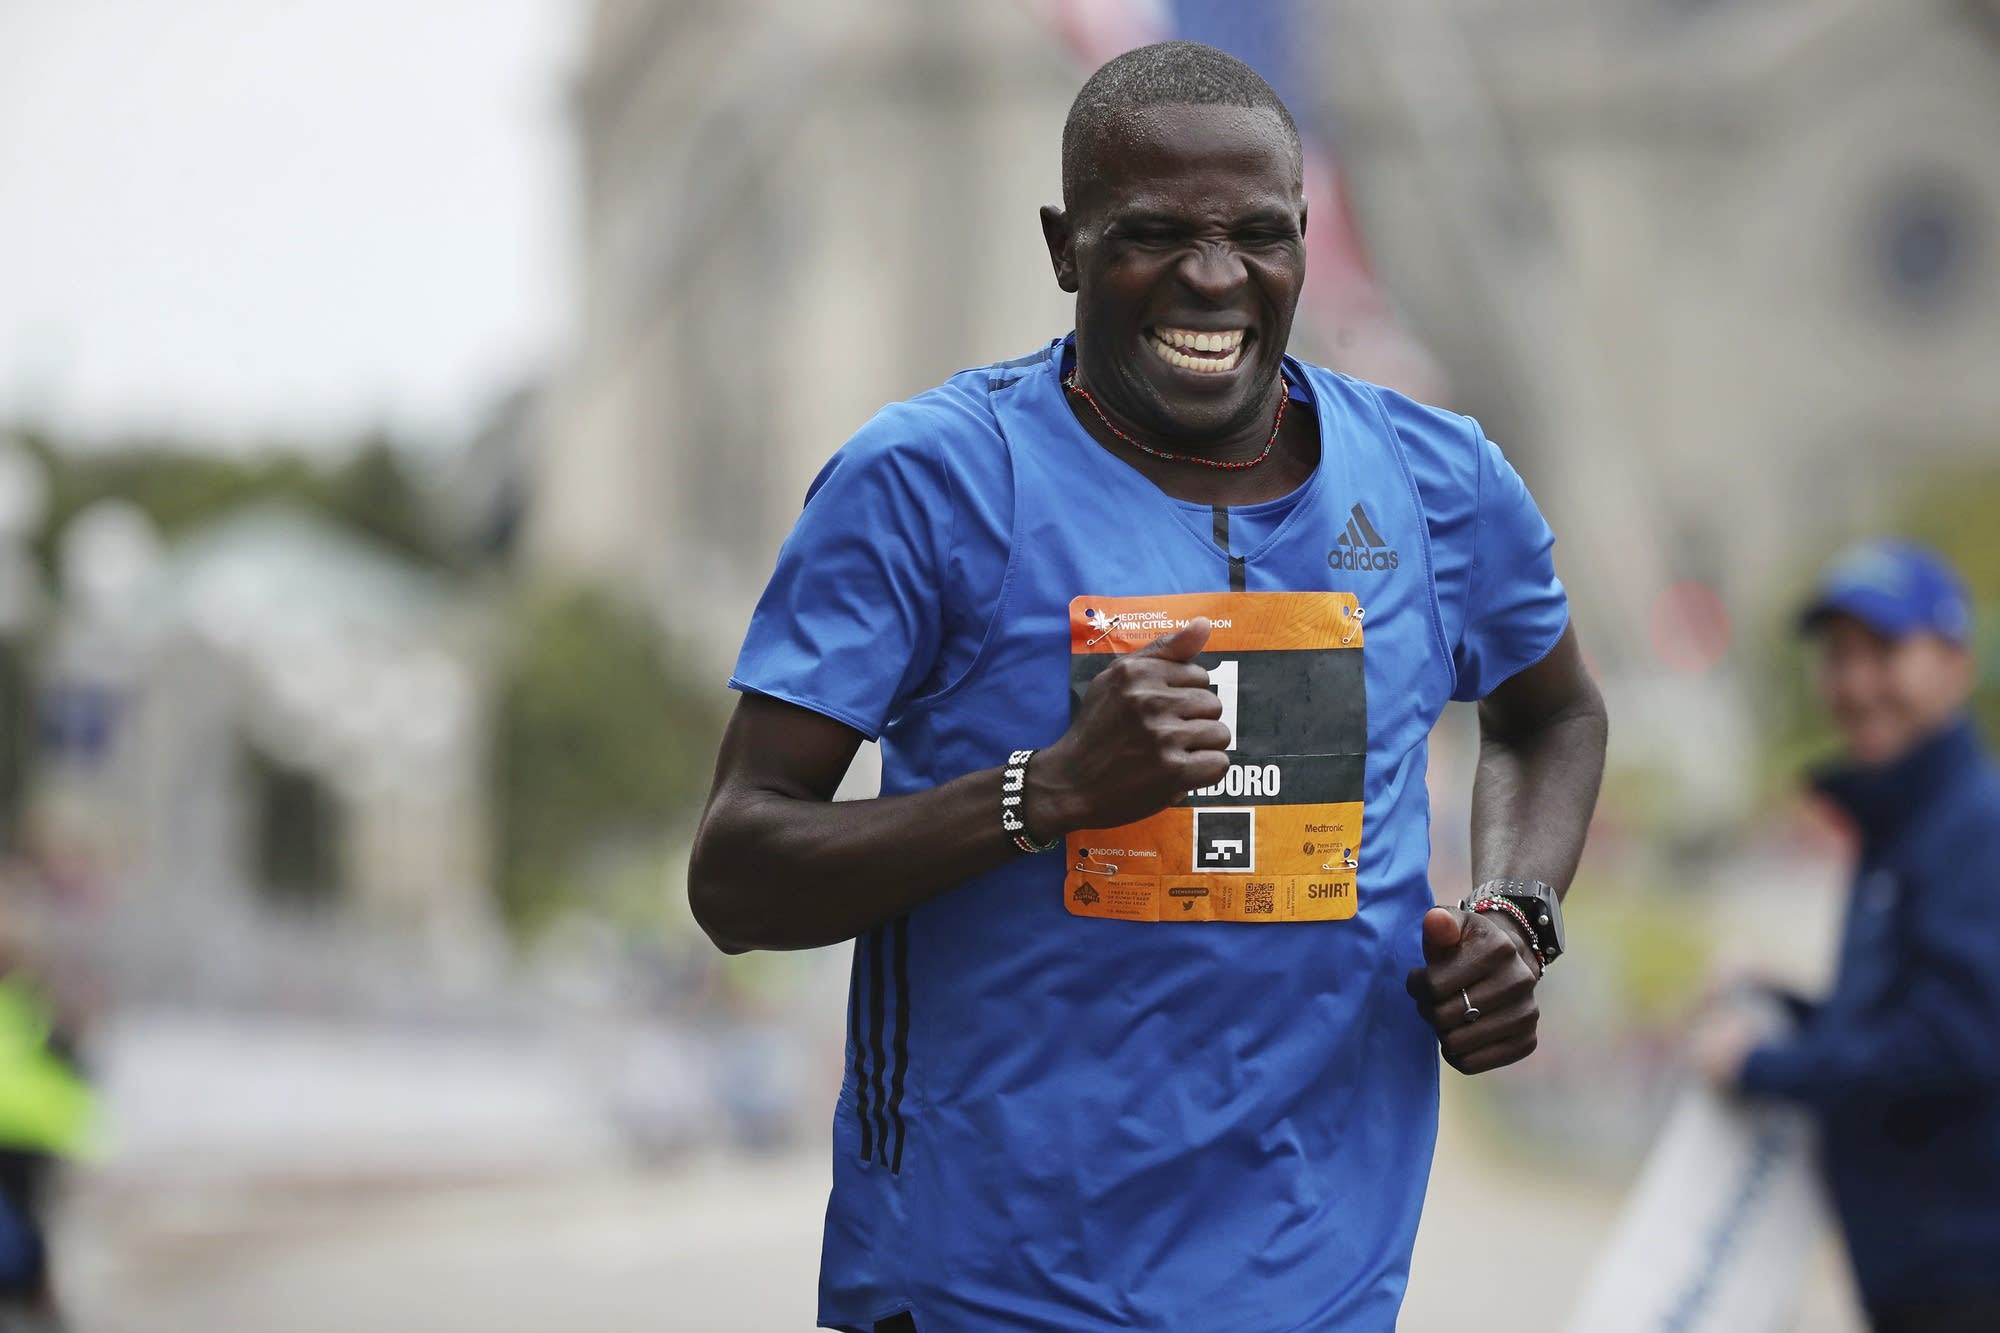 Dominic Ondoro Wins Twin Cities Marathon For 3rd Time In A Row